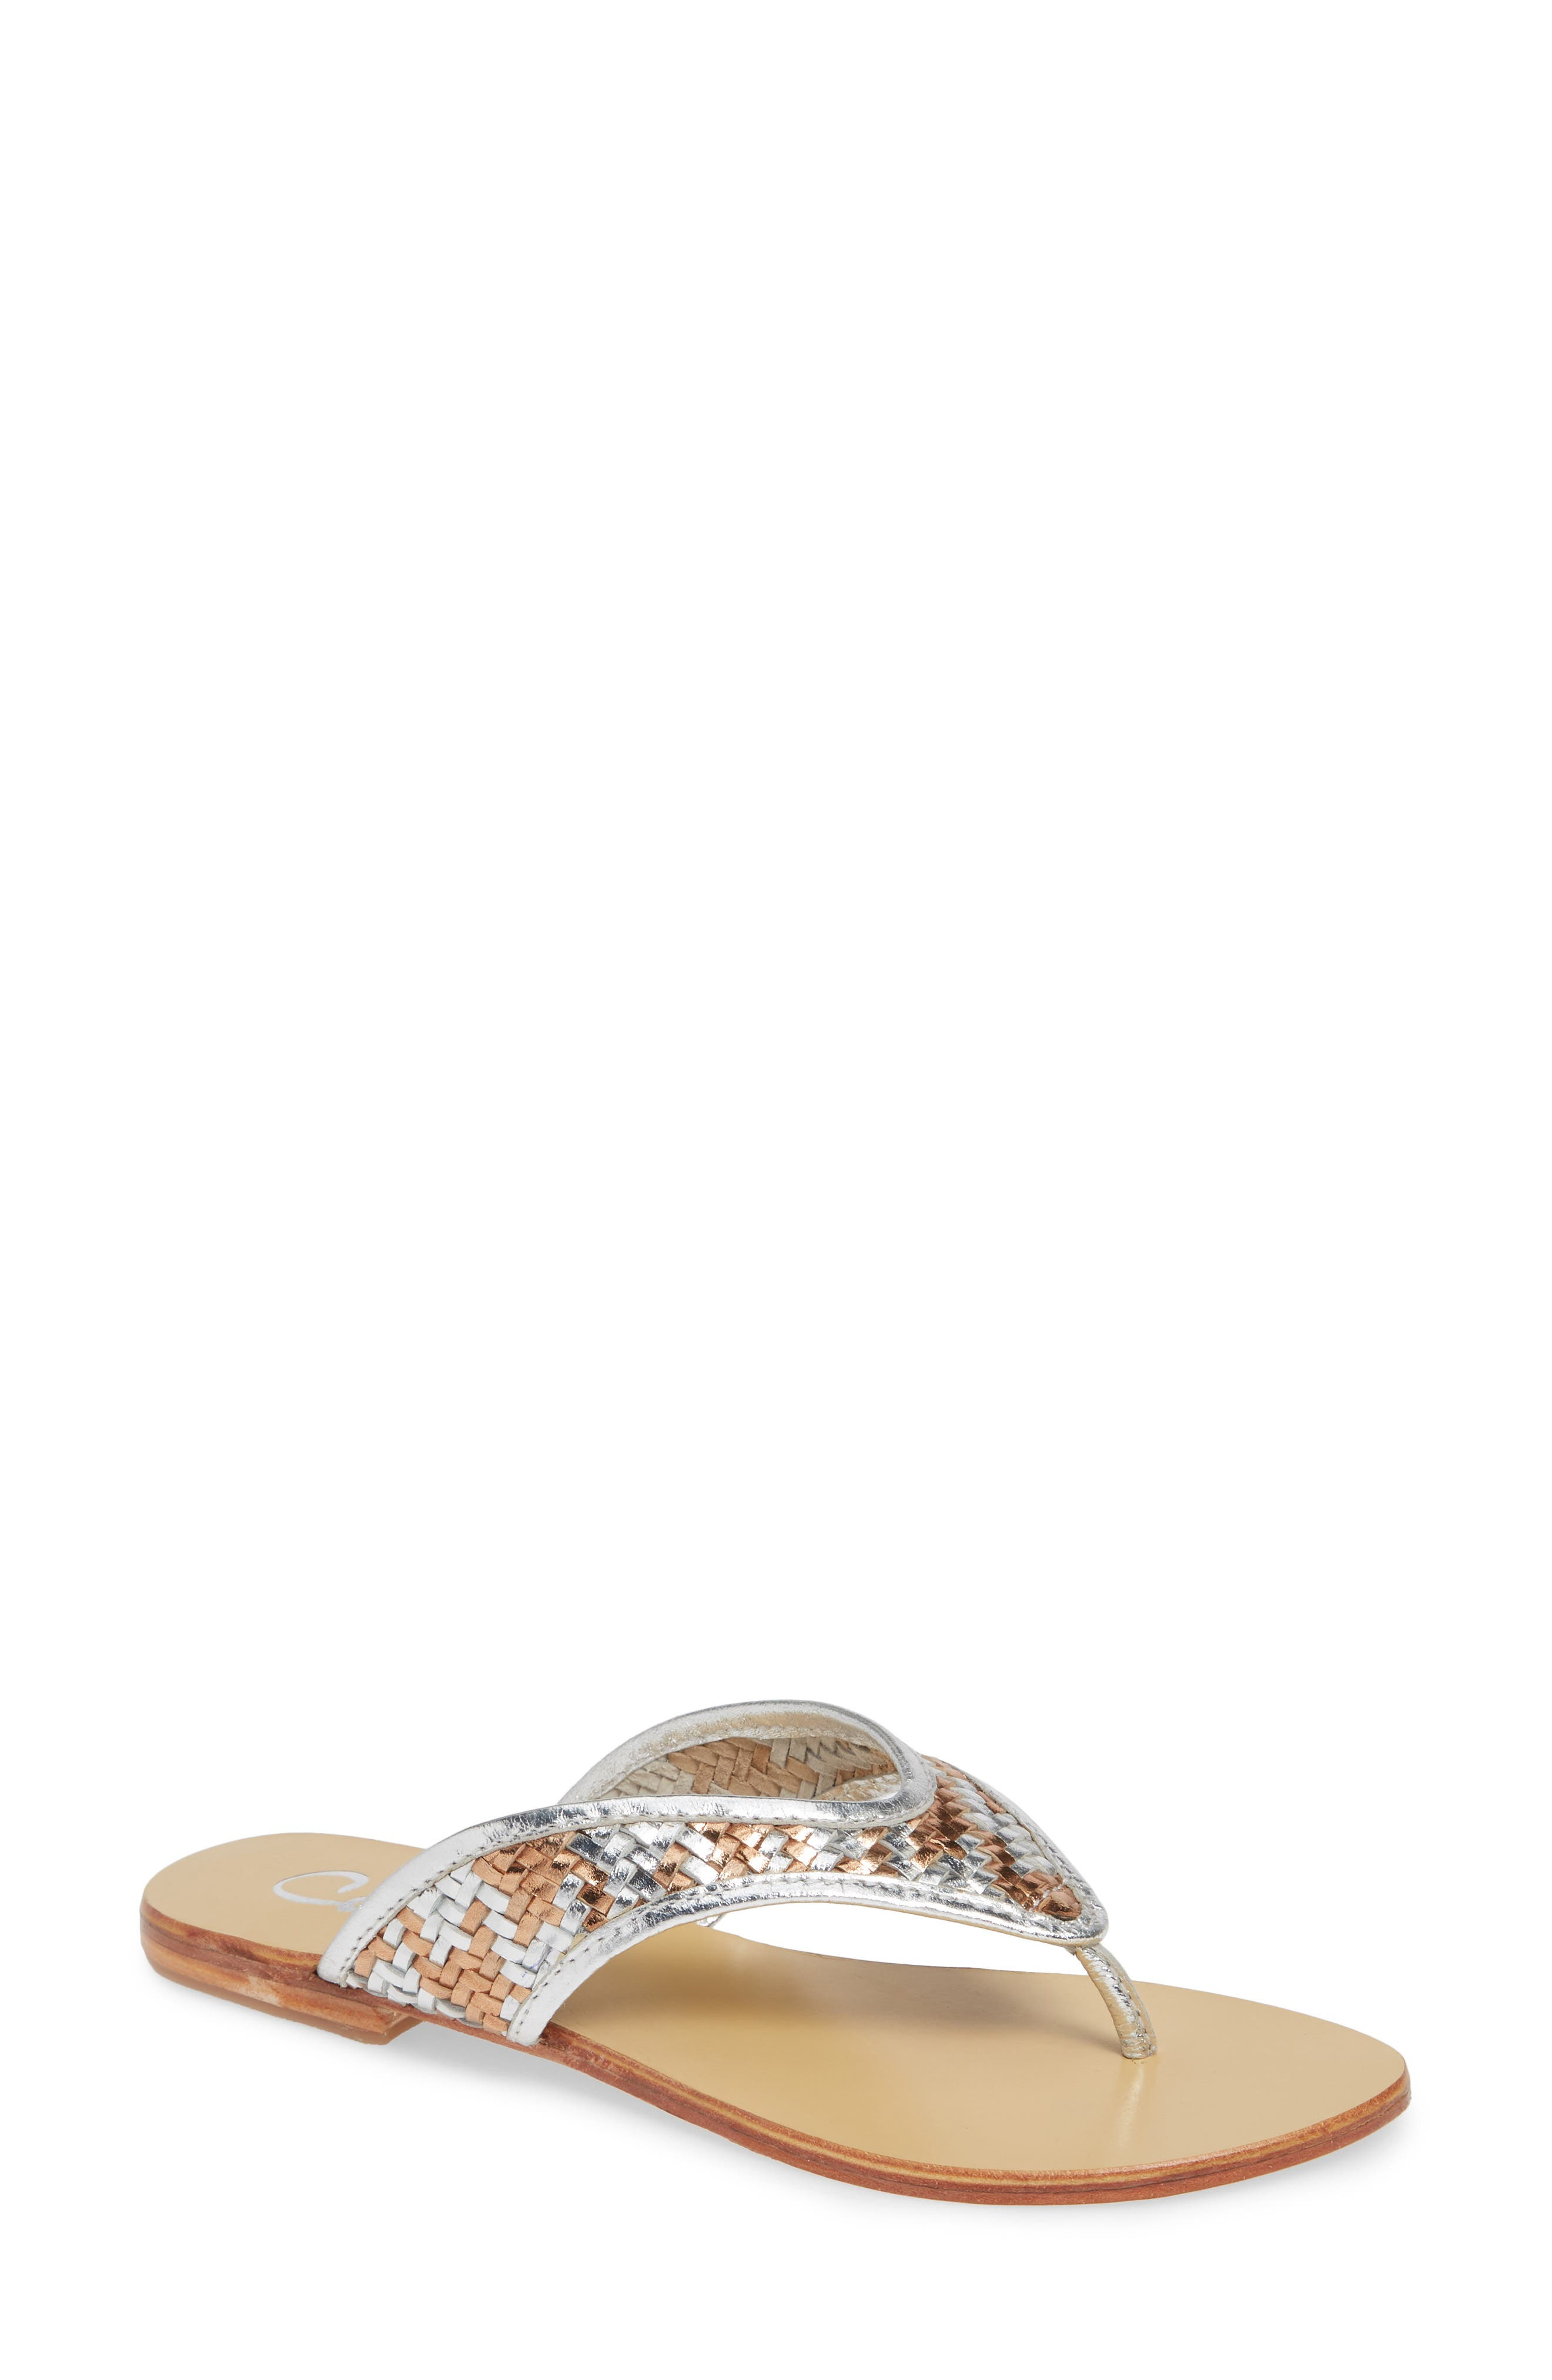 Thunder Woven Flip Flop, Main, color, SILVER GOLD WOVEN LEATHER